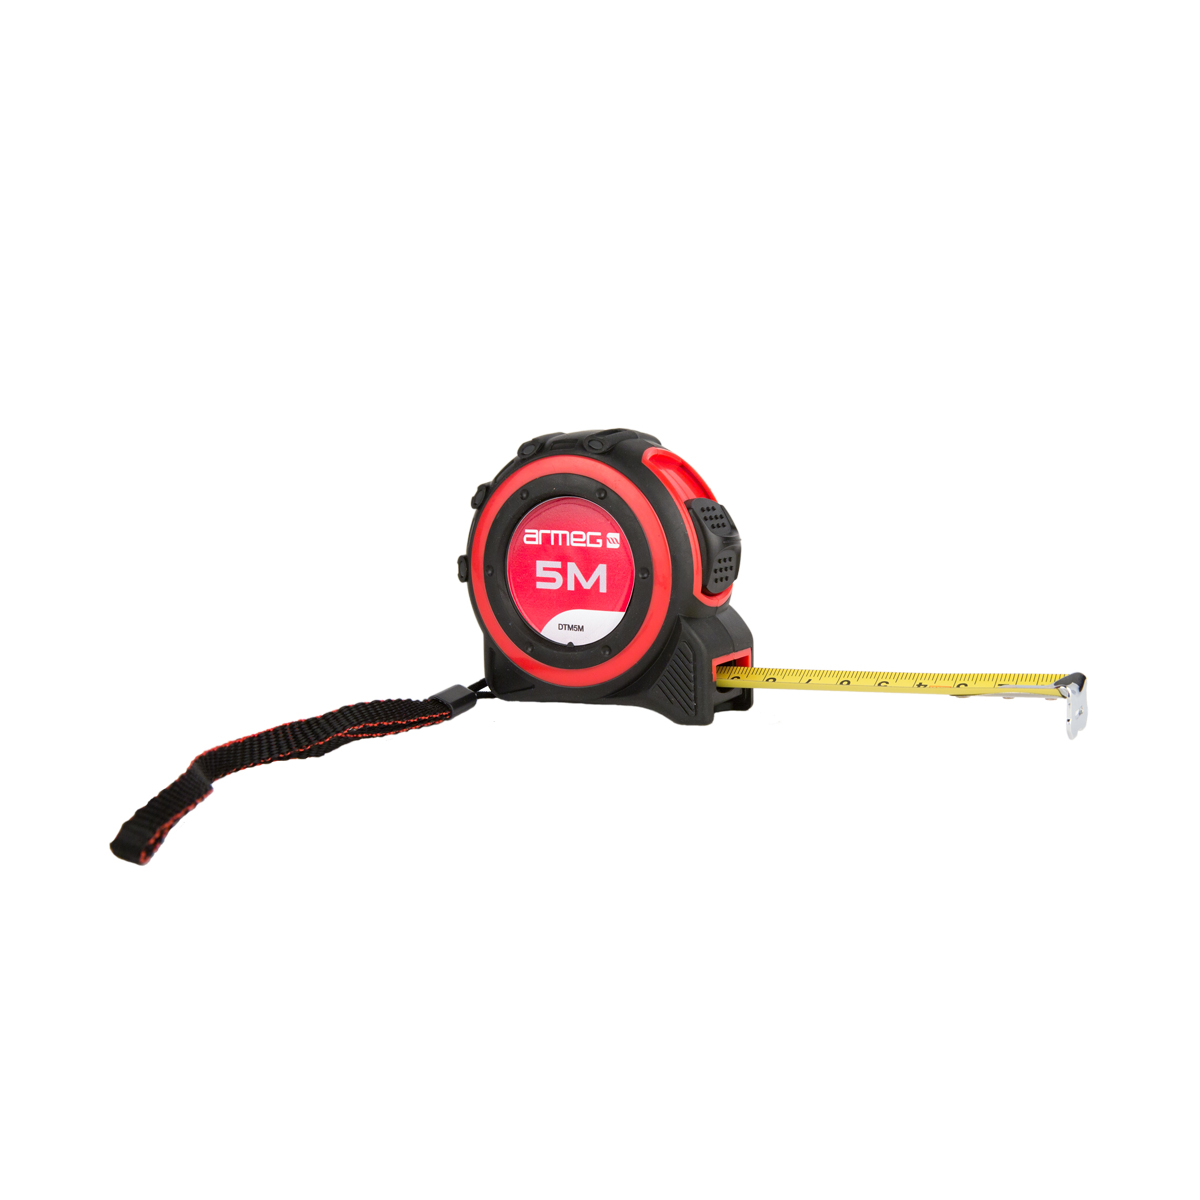 5m / 16' Tape Measure